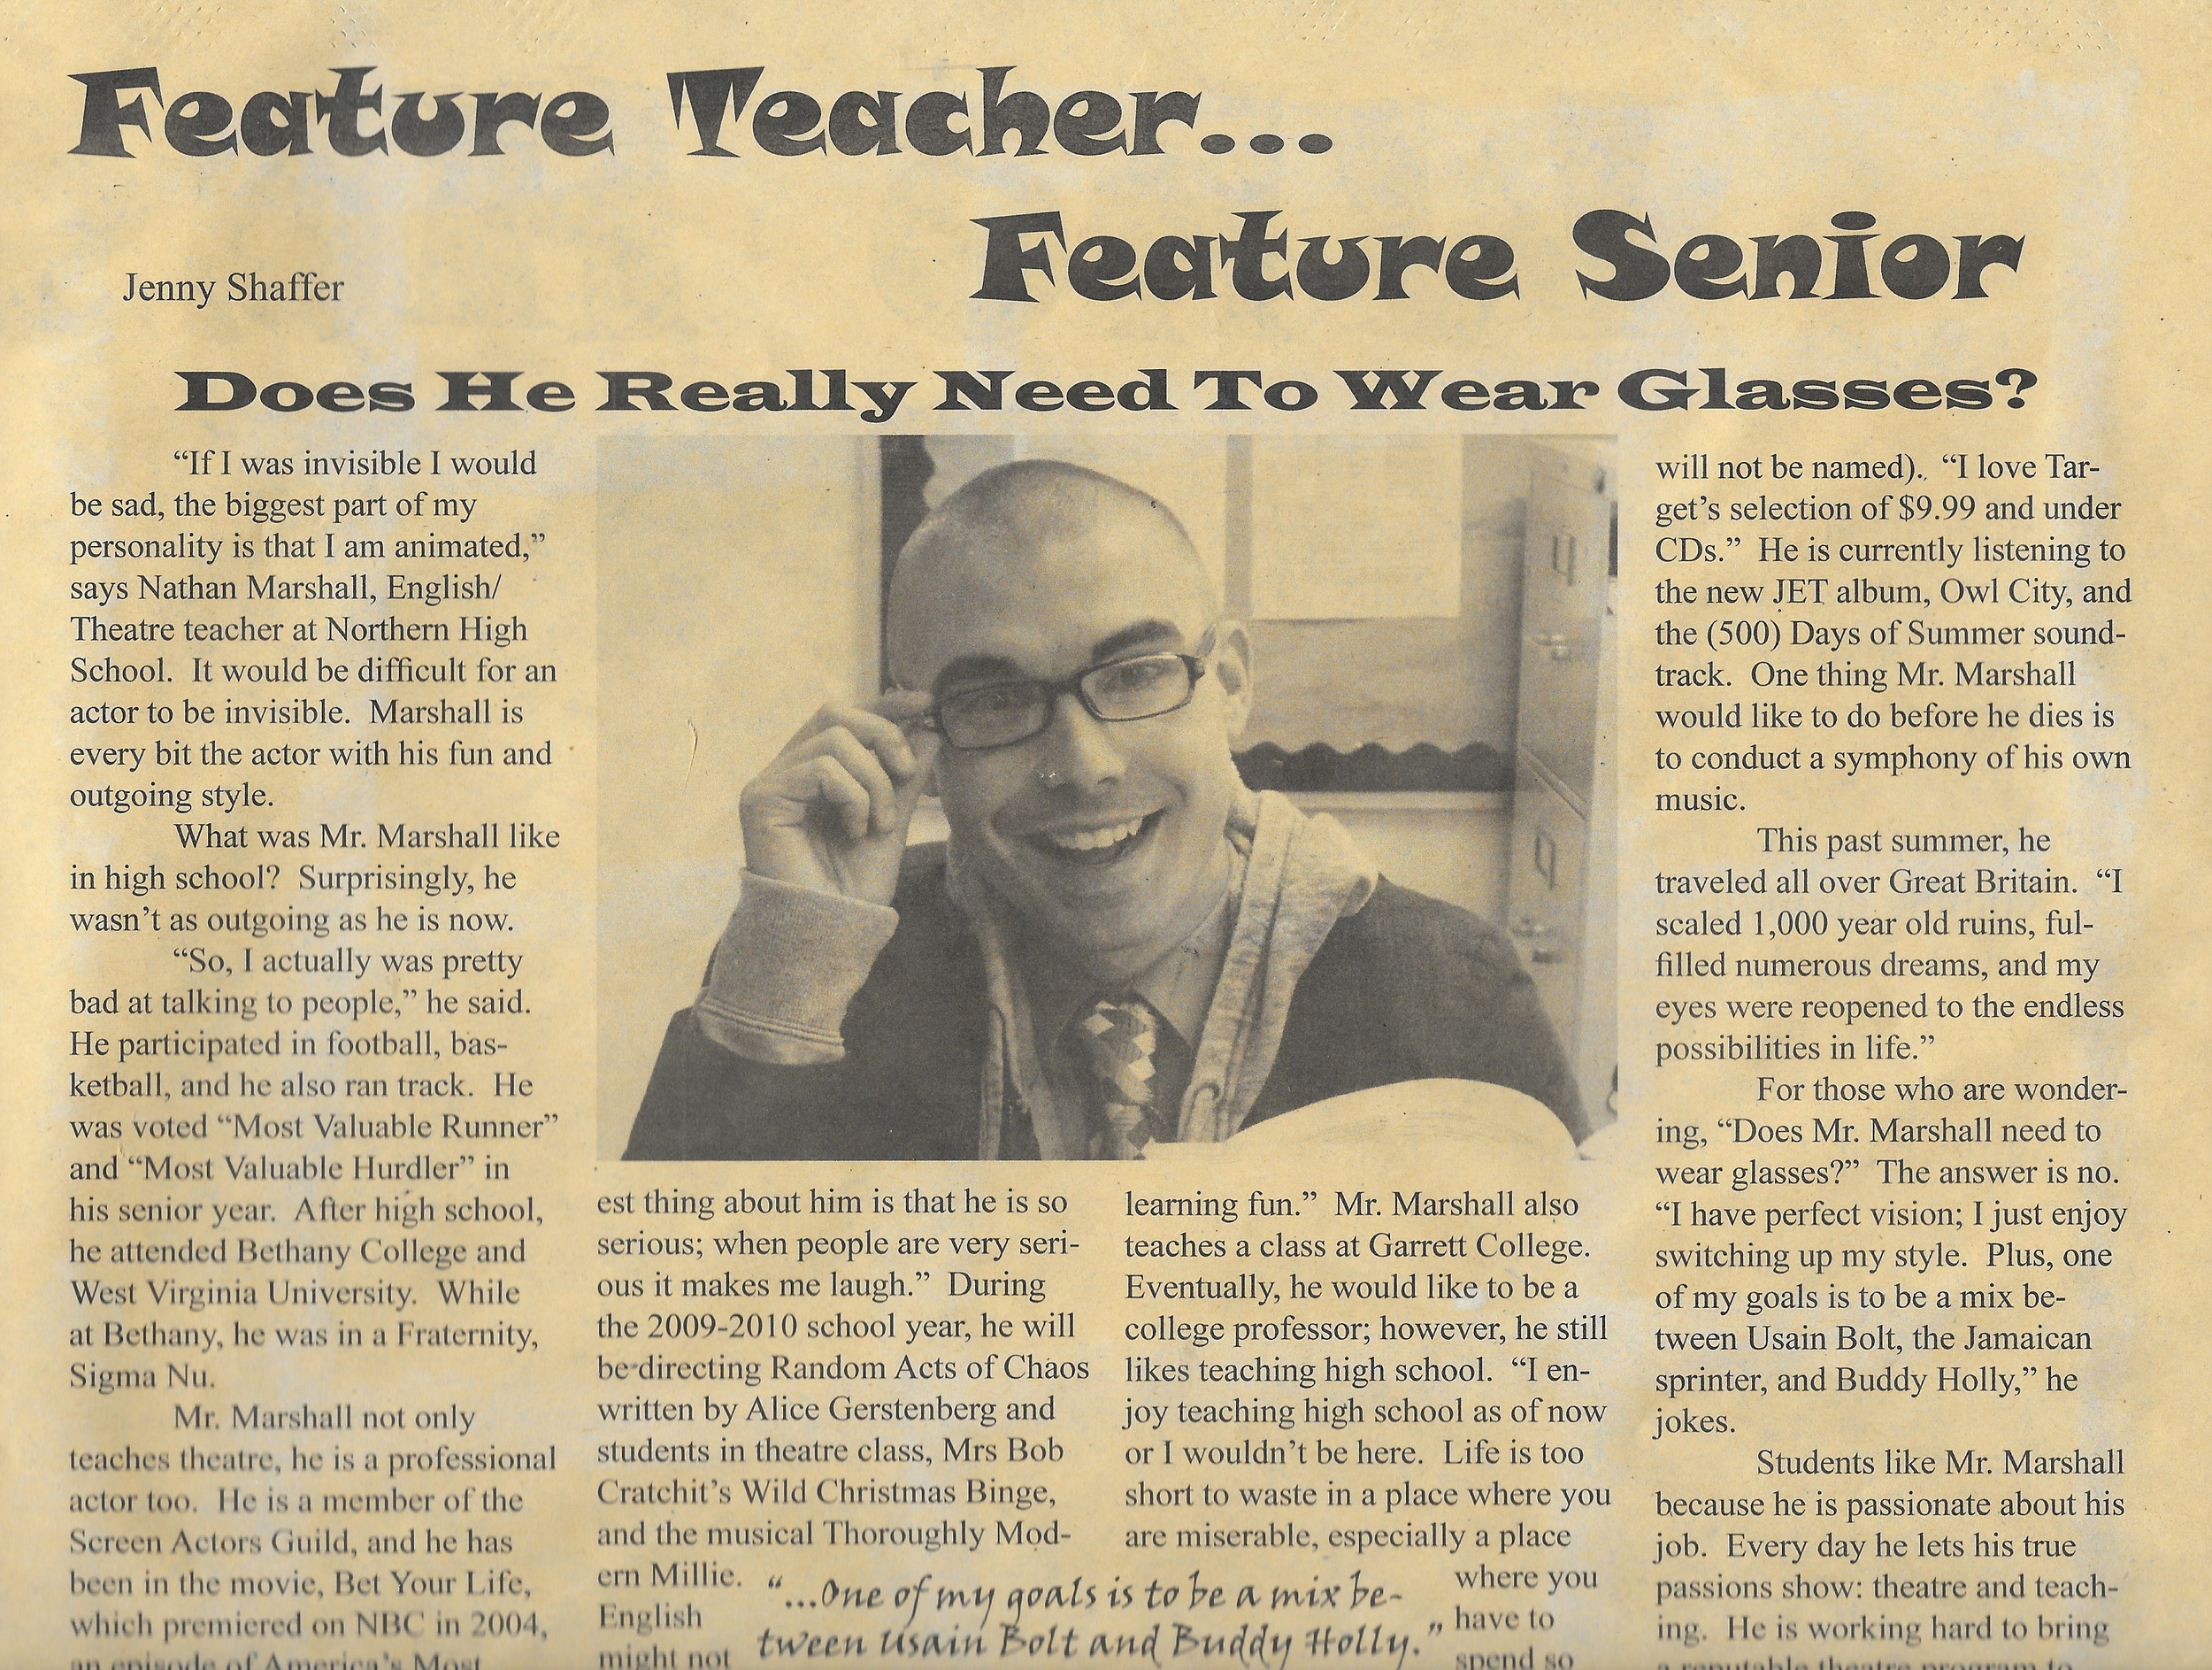 I WAS THE FEATURED TEACHER IN THE NHS NEWSPAPER DURING MY FIRST YEAR OF TEACHING